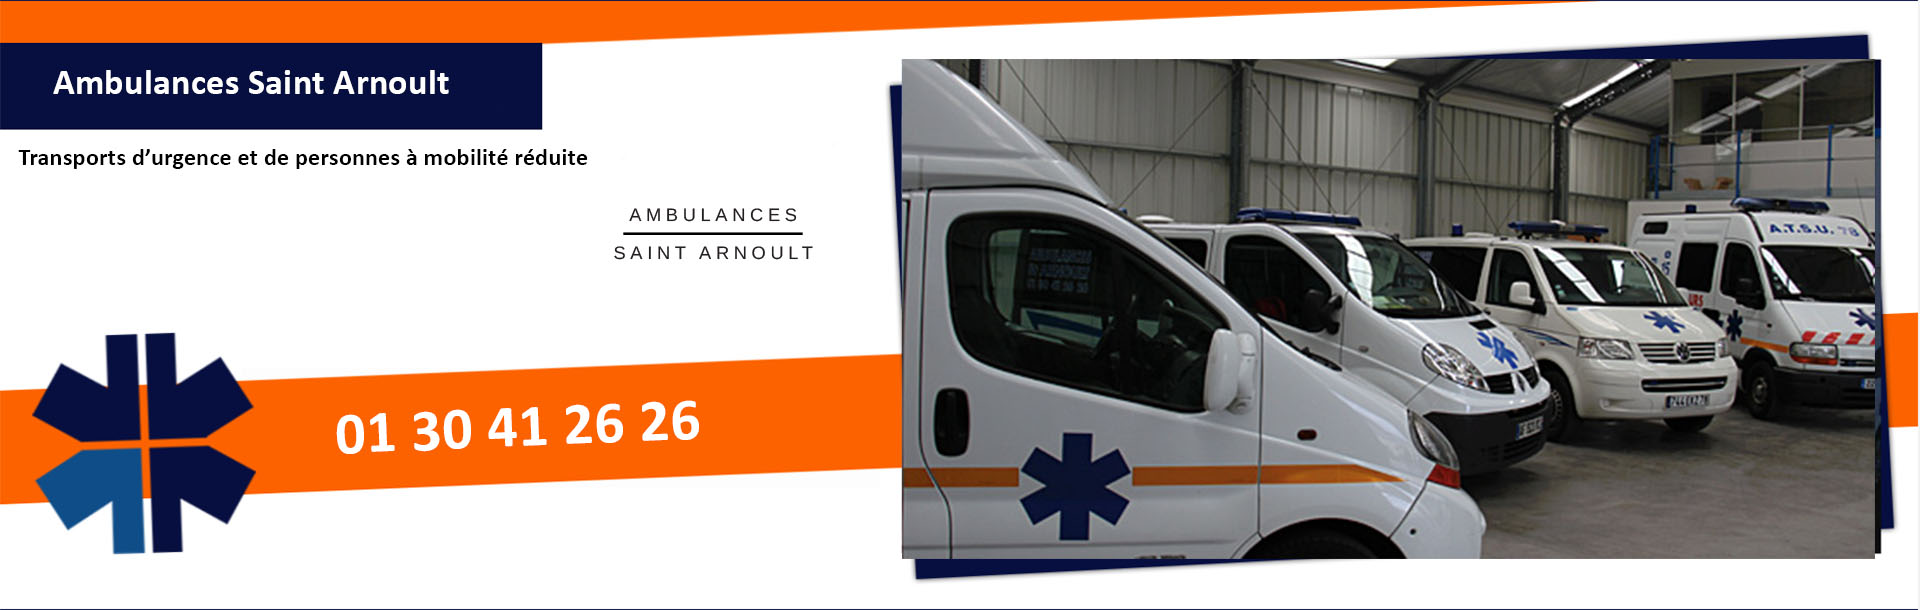 Ambulances Saint-Arnoult